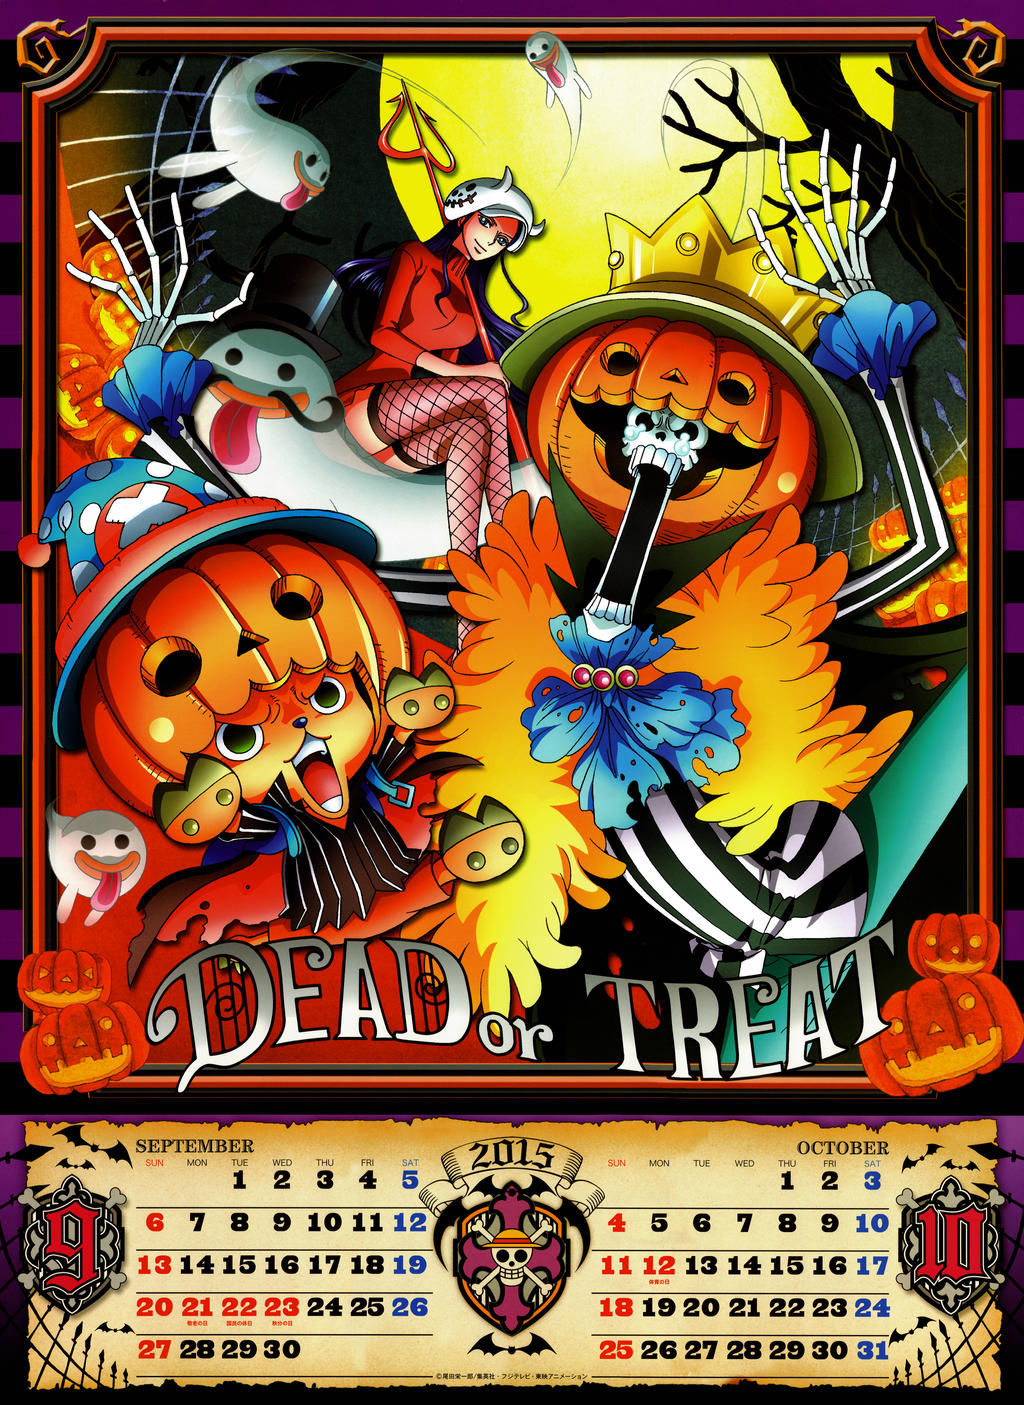 Calendar Art Piece : September october one piece official calendar by